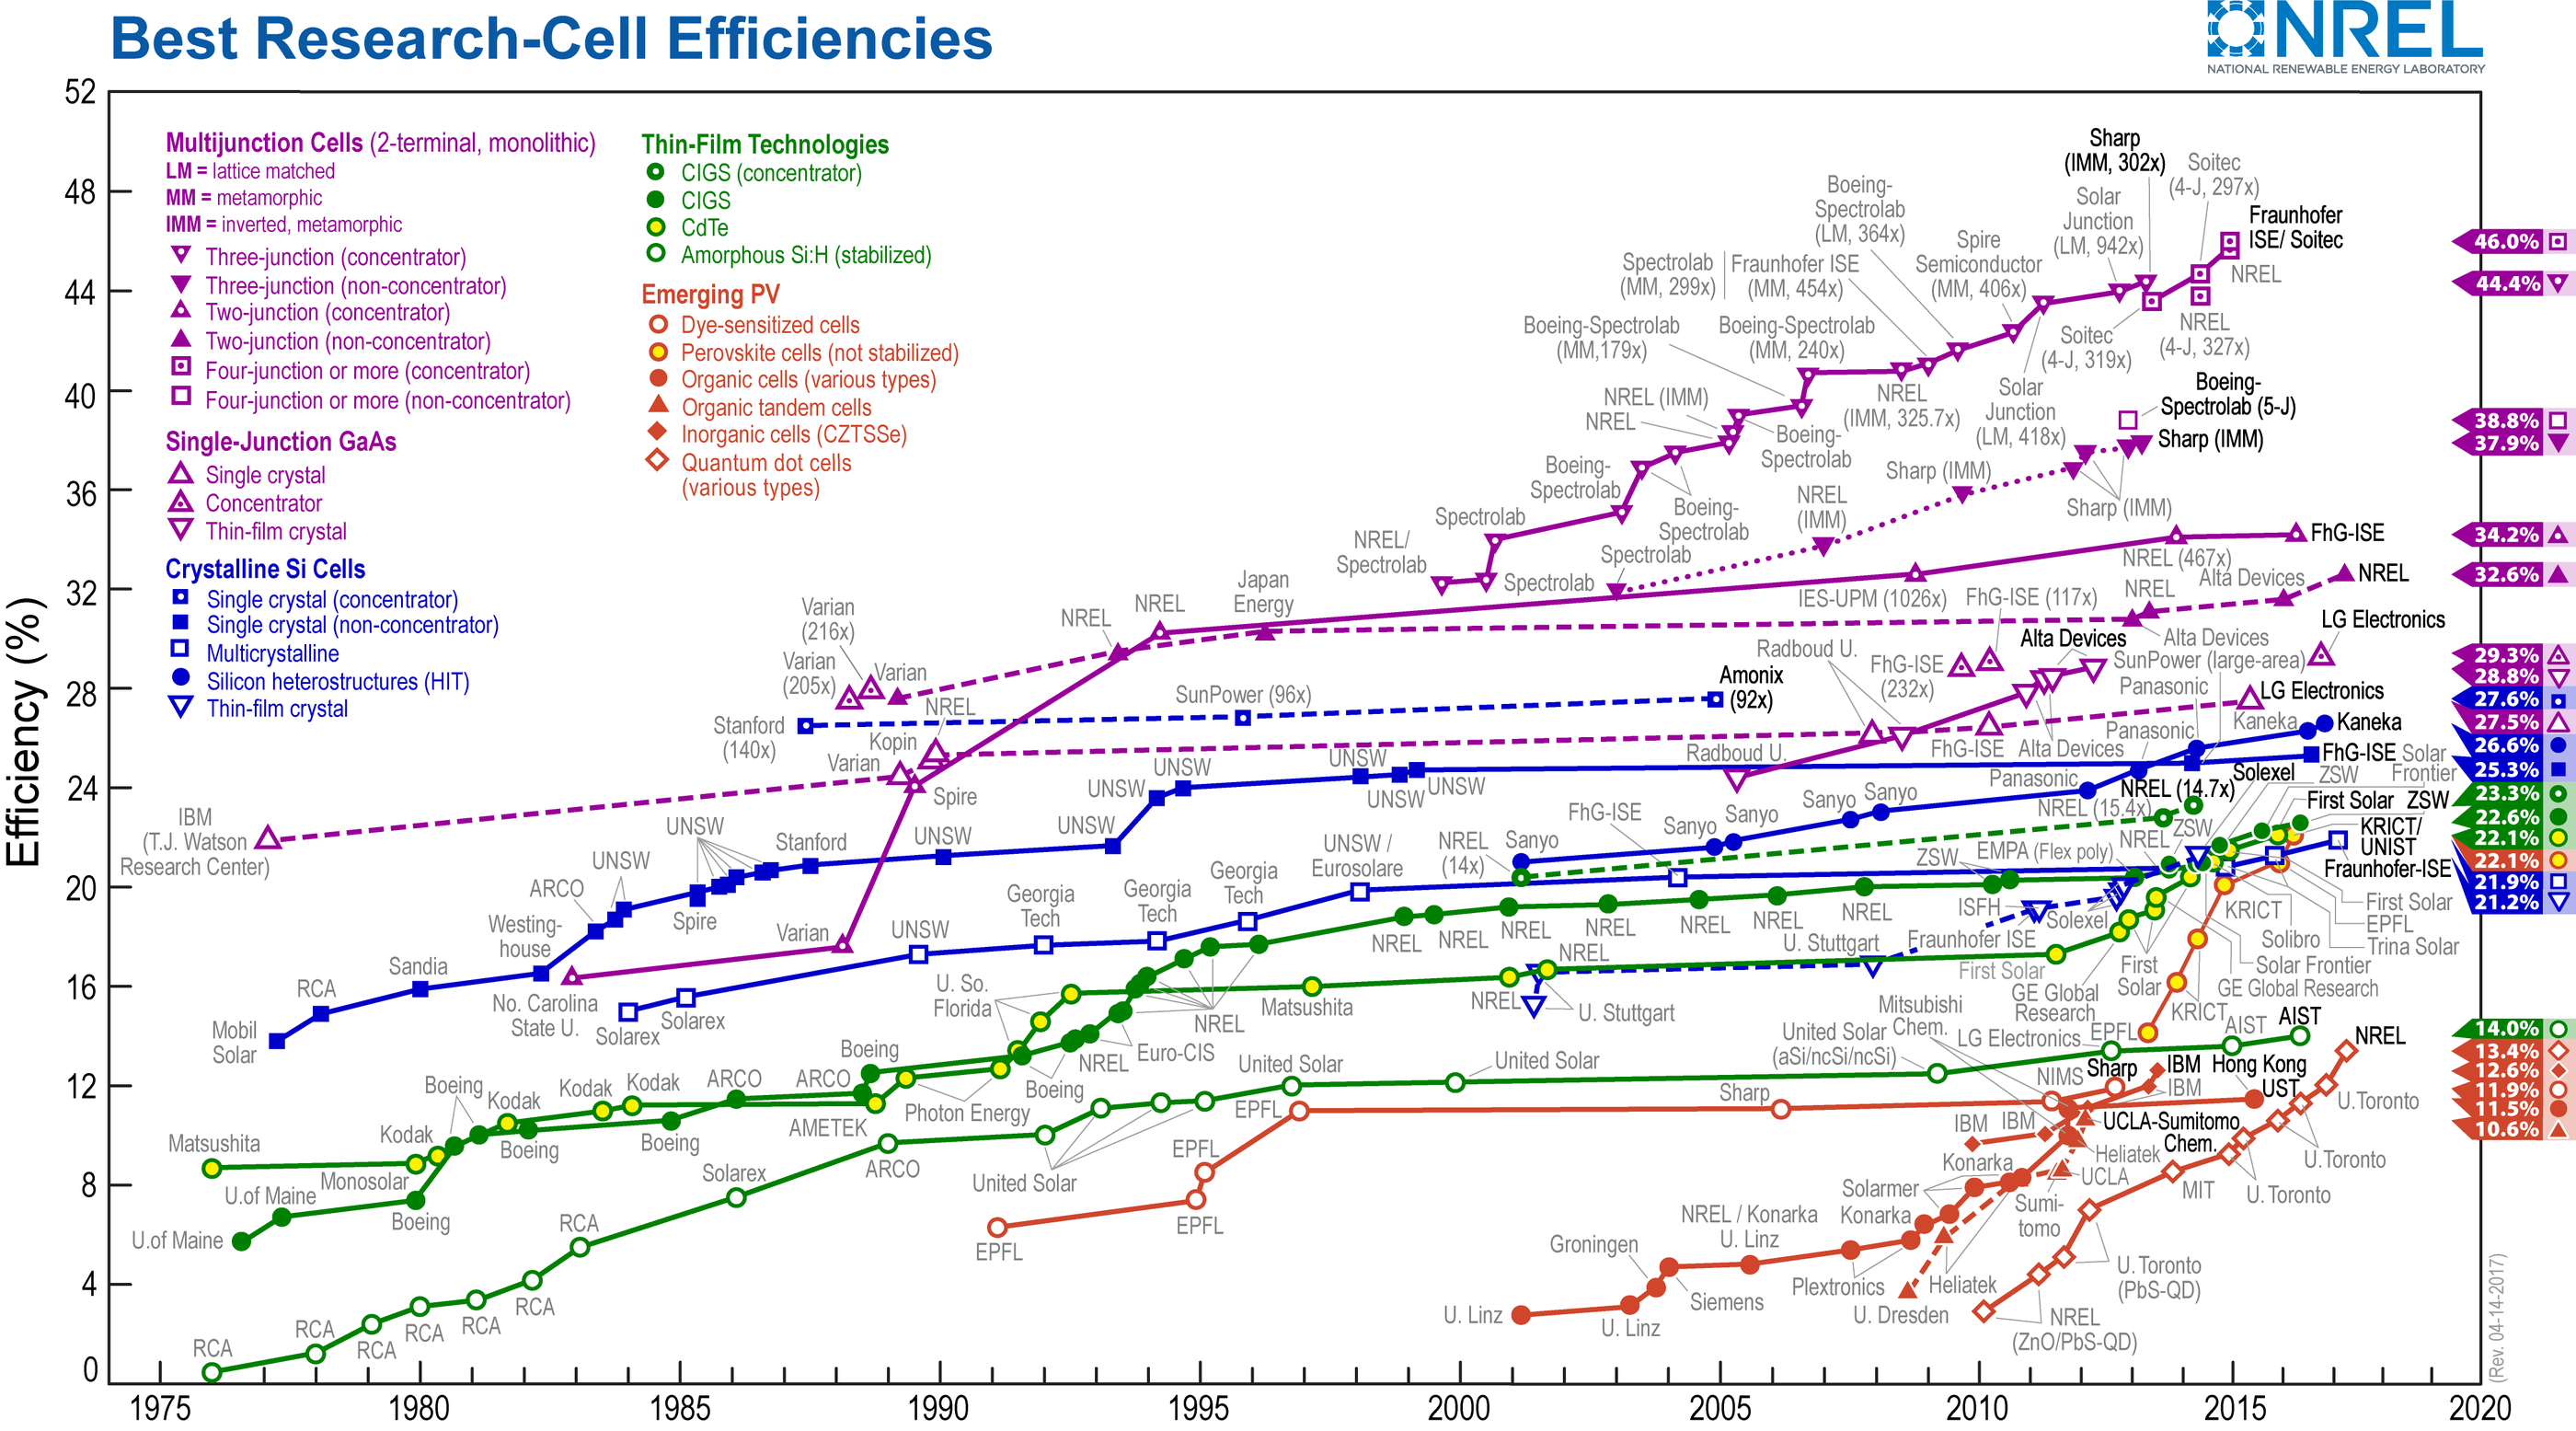 NREL PV Efficiencies